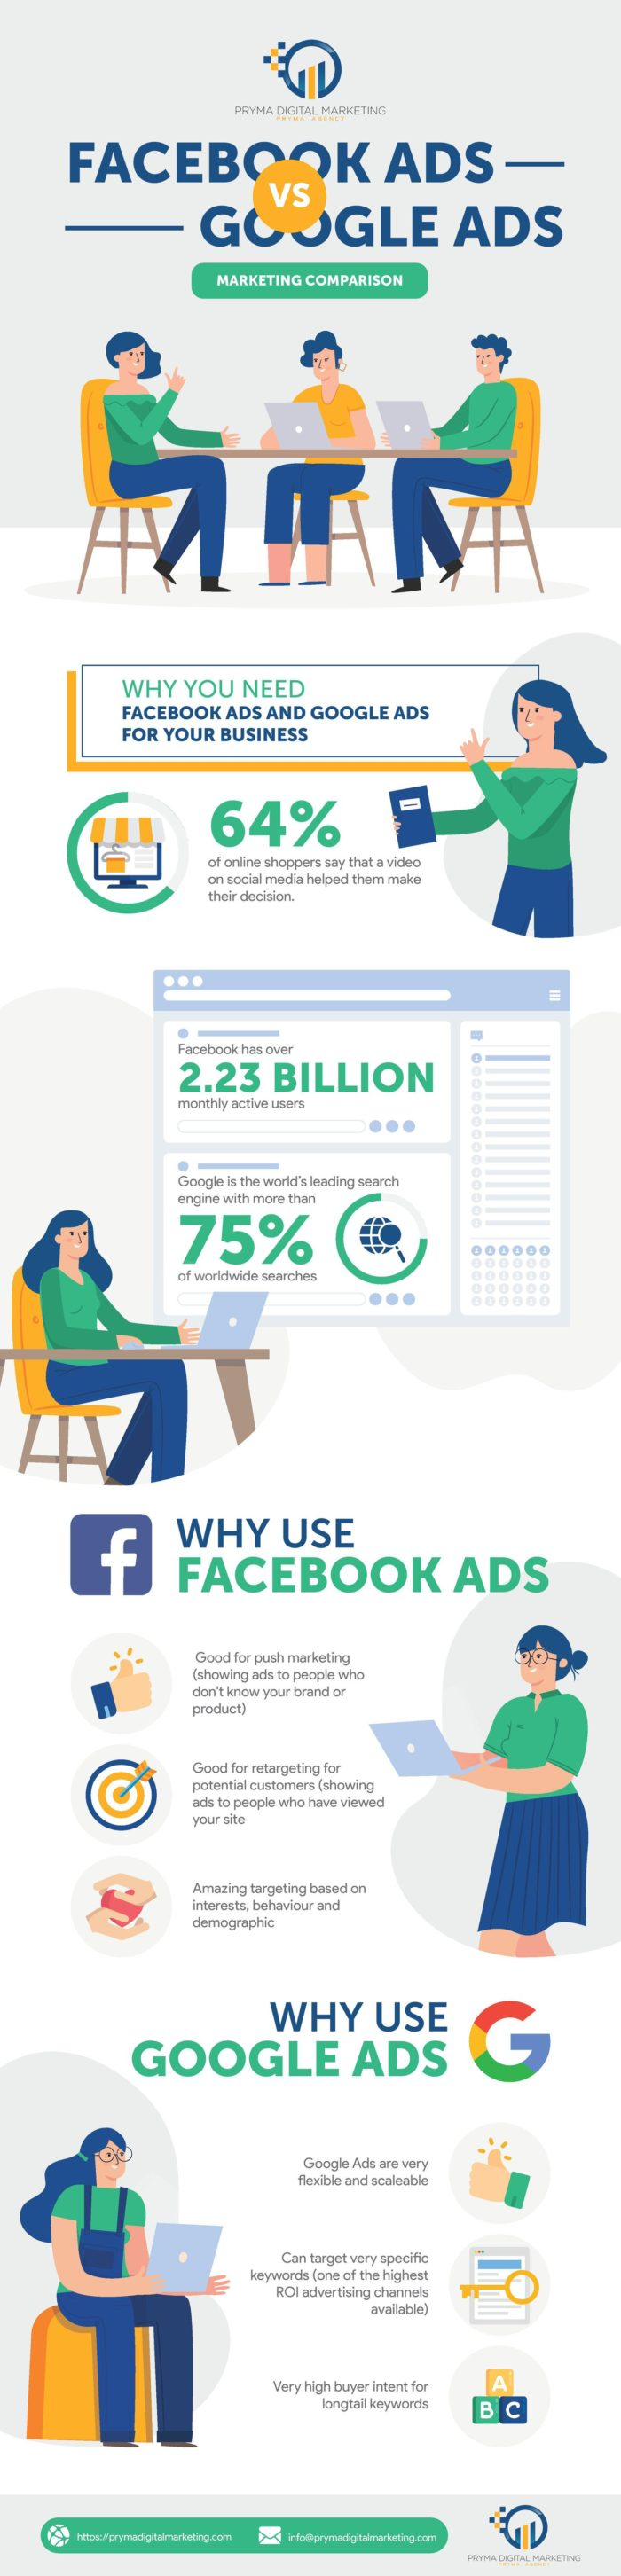 Facebook Ads Vs. Google Ads